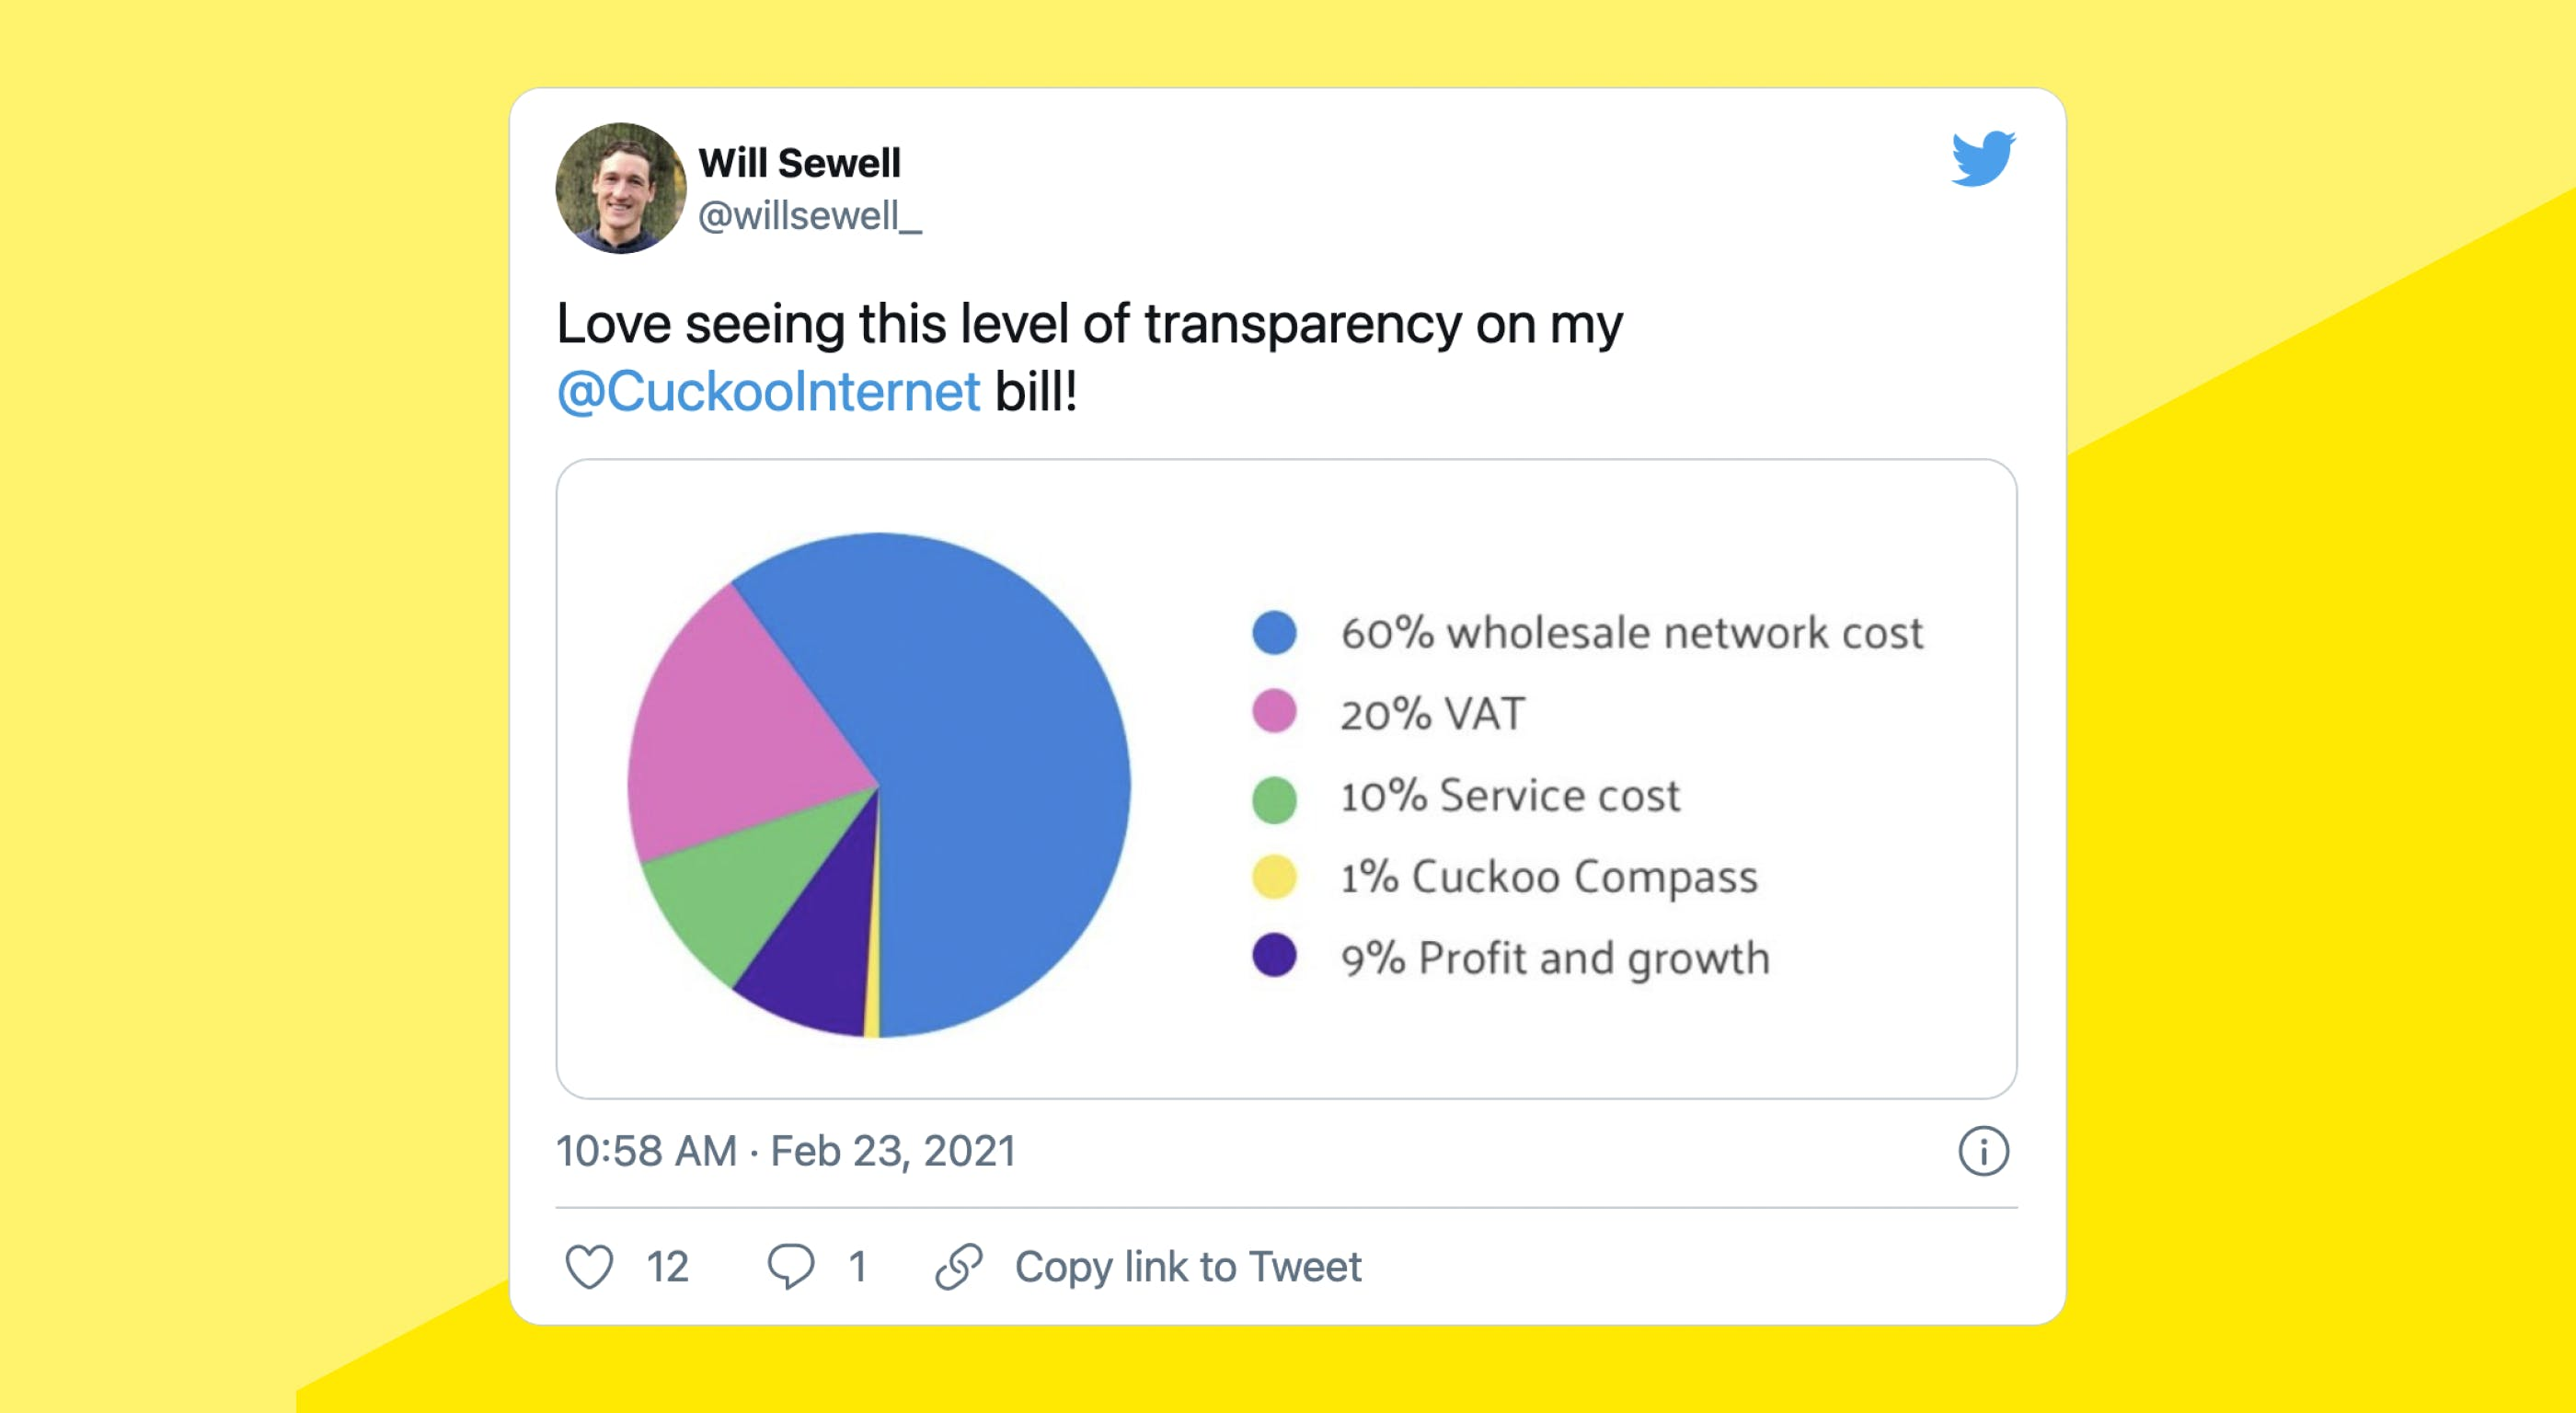 """Tweet: """"Love seeing this level of transparency on my @CuckooInternet bill! Accompanied by pie chart showing 60% wholesale cost, 20% VAT, 10% service cost, 1% Cuckoo Compass and 9% profit and growth"""""""